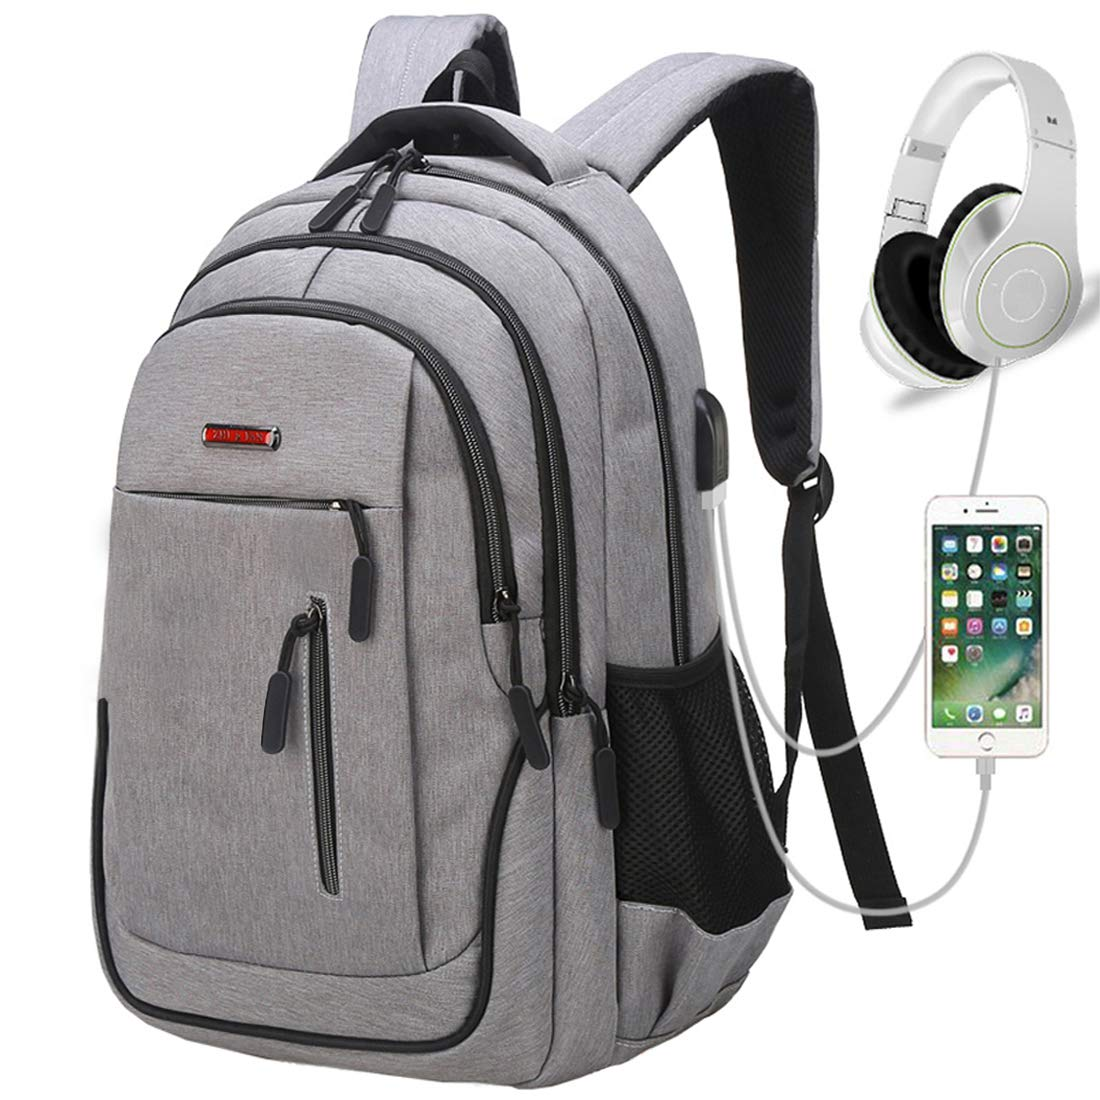 Travel Laptop Backpack, Business Laptop Backpacks USB Charging Port Headphone Interface,Water Resistant College School Computer Bag Women & Men Fits 15.6 inch Laptop Notebook(Gray) by MEWAY (Image #1)